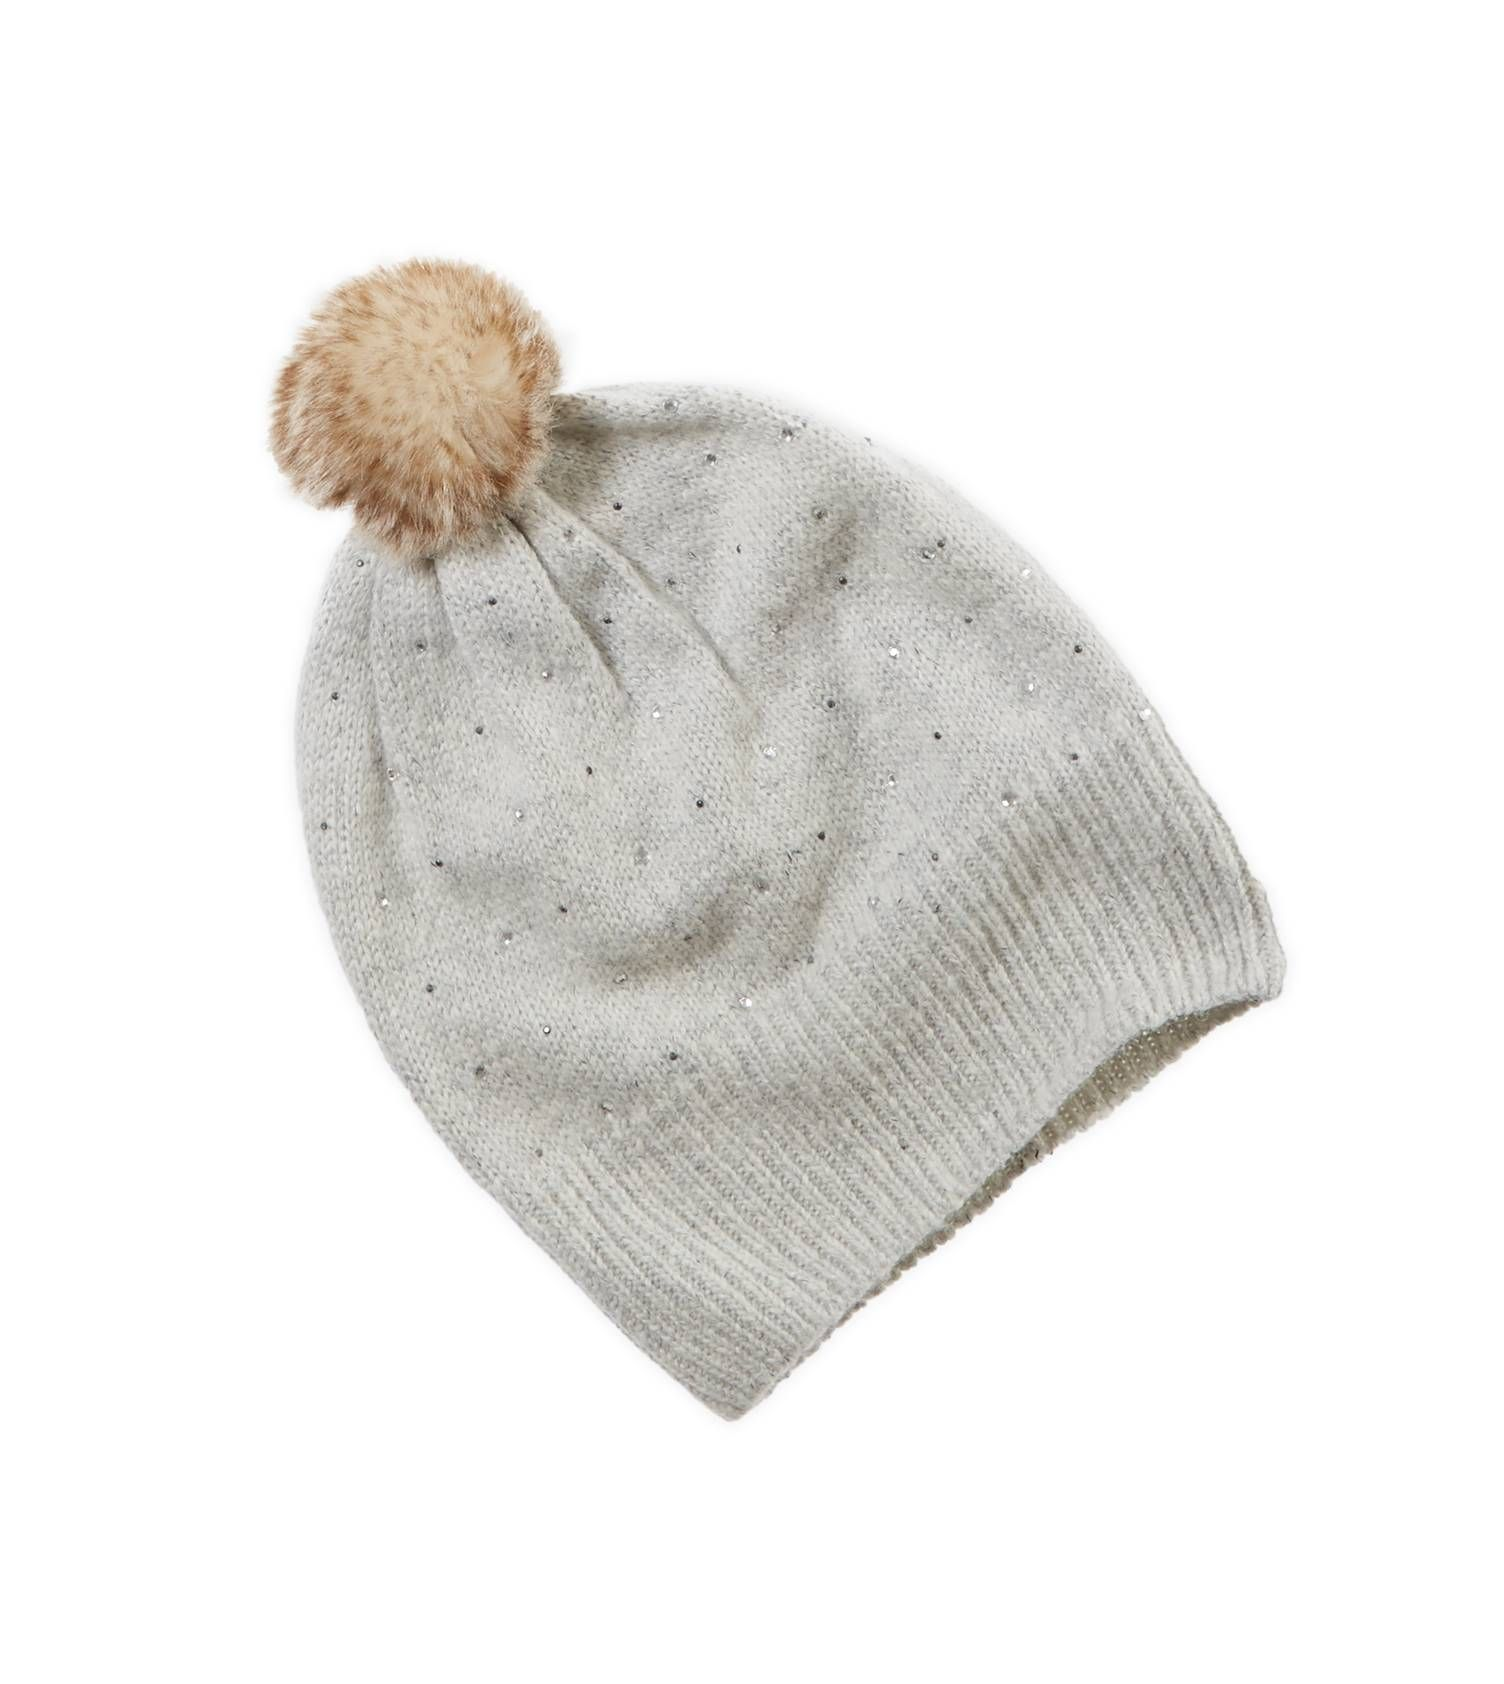 fae879d72 Pom Beanie | It's All About the Accessories | Fashion, Style, Hats